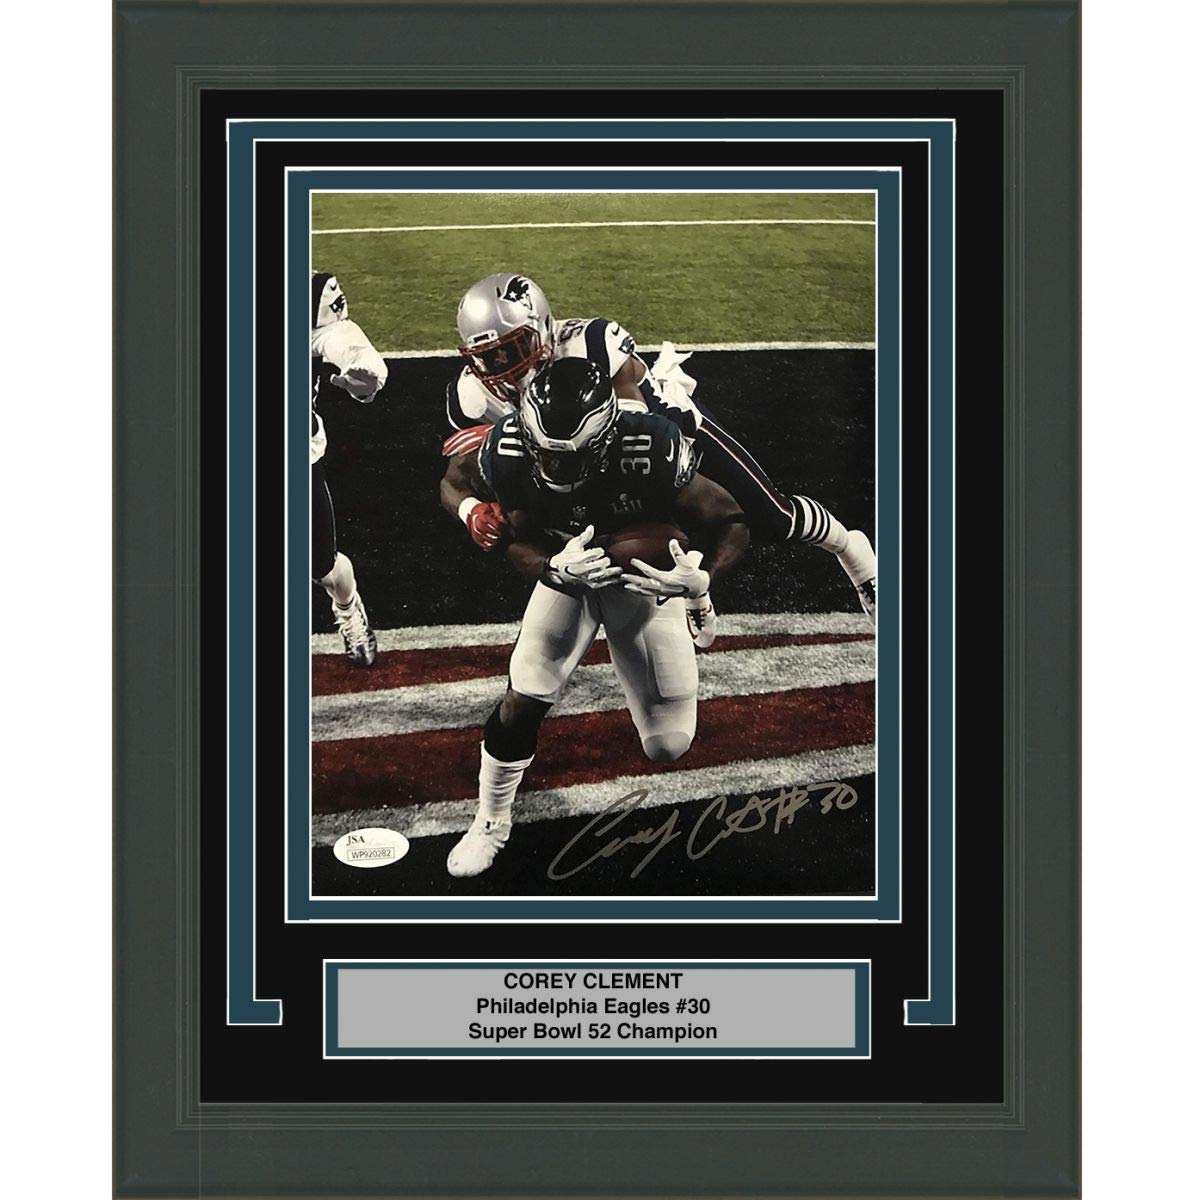 f52cb97b8e4 Framed Autographed/Signed Corey Clement Philadelphia Eagles Super Bowl LII  52 TD Champions 8x10 Football Photo JSA COA #1 at Amazon's Sports  Collectibles ...